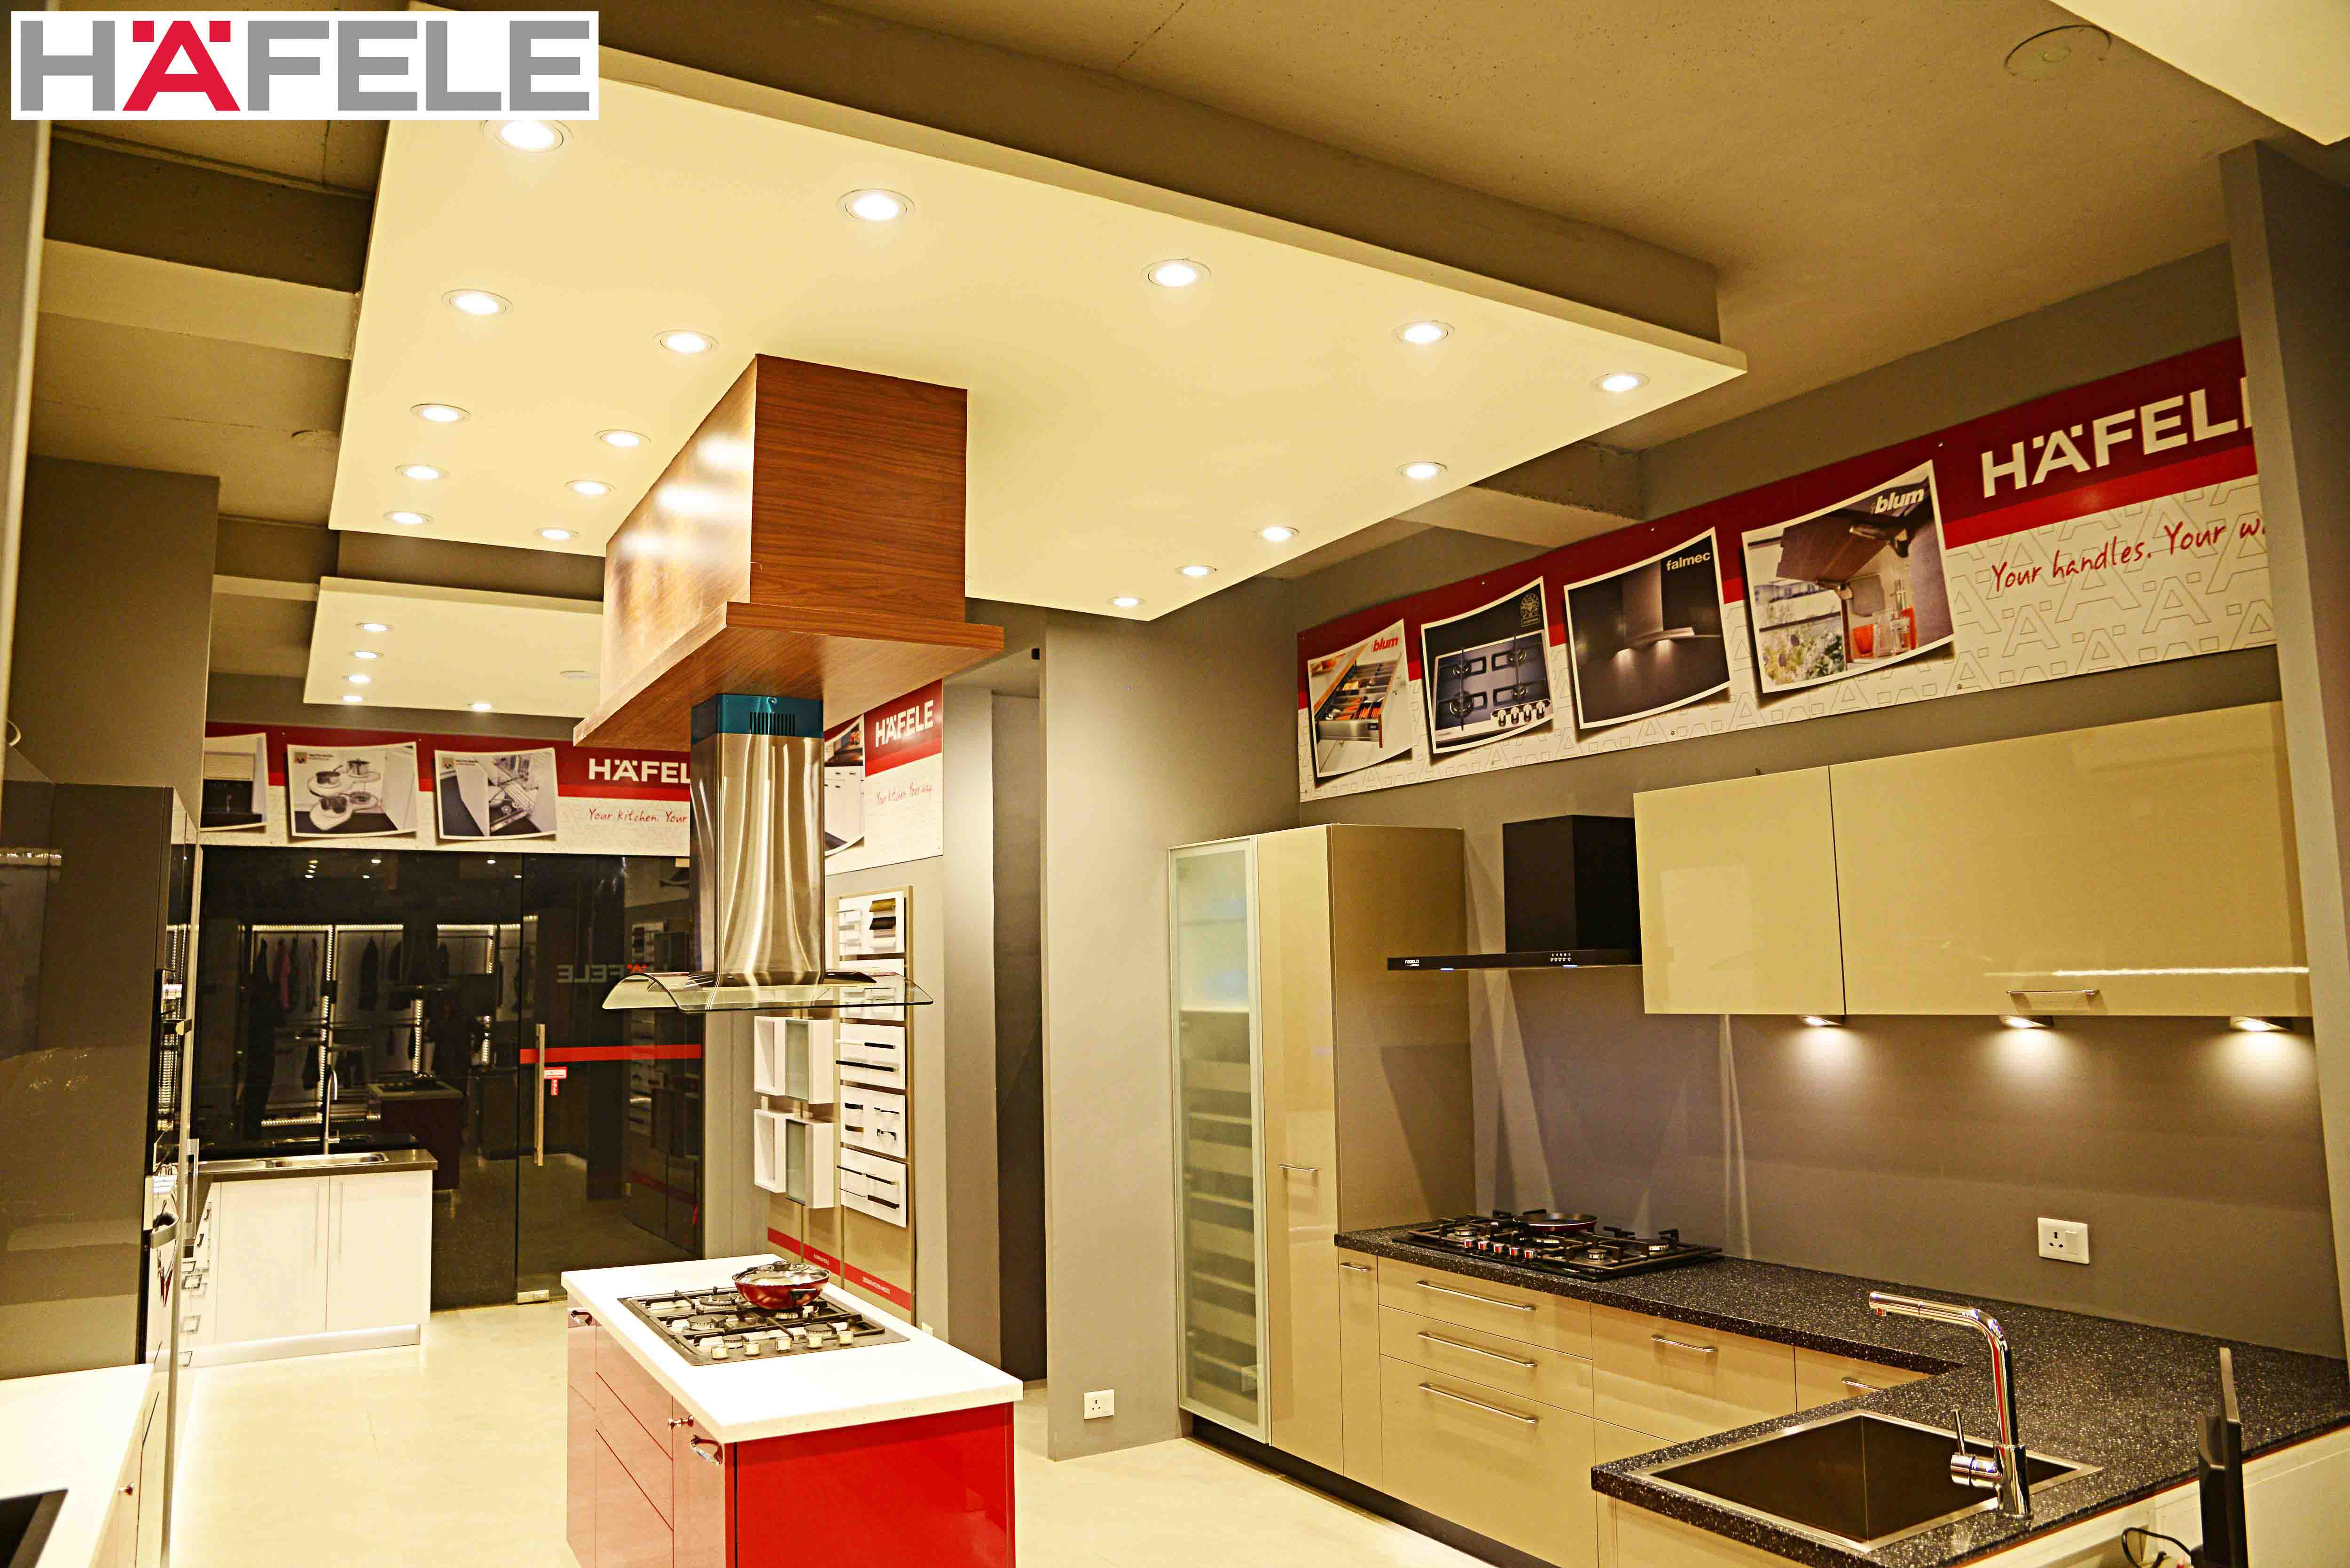 Kitchen Design Online Shopping India Häfele Launches Zara E Shop In Noida Property News For You